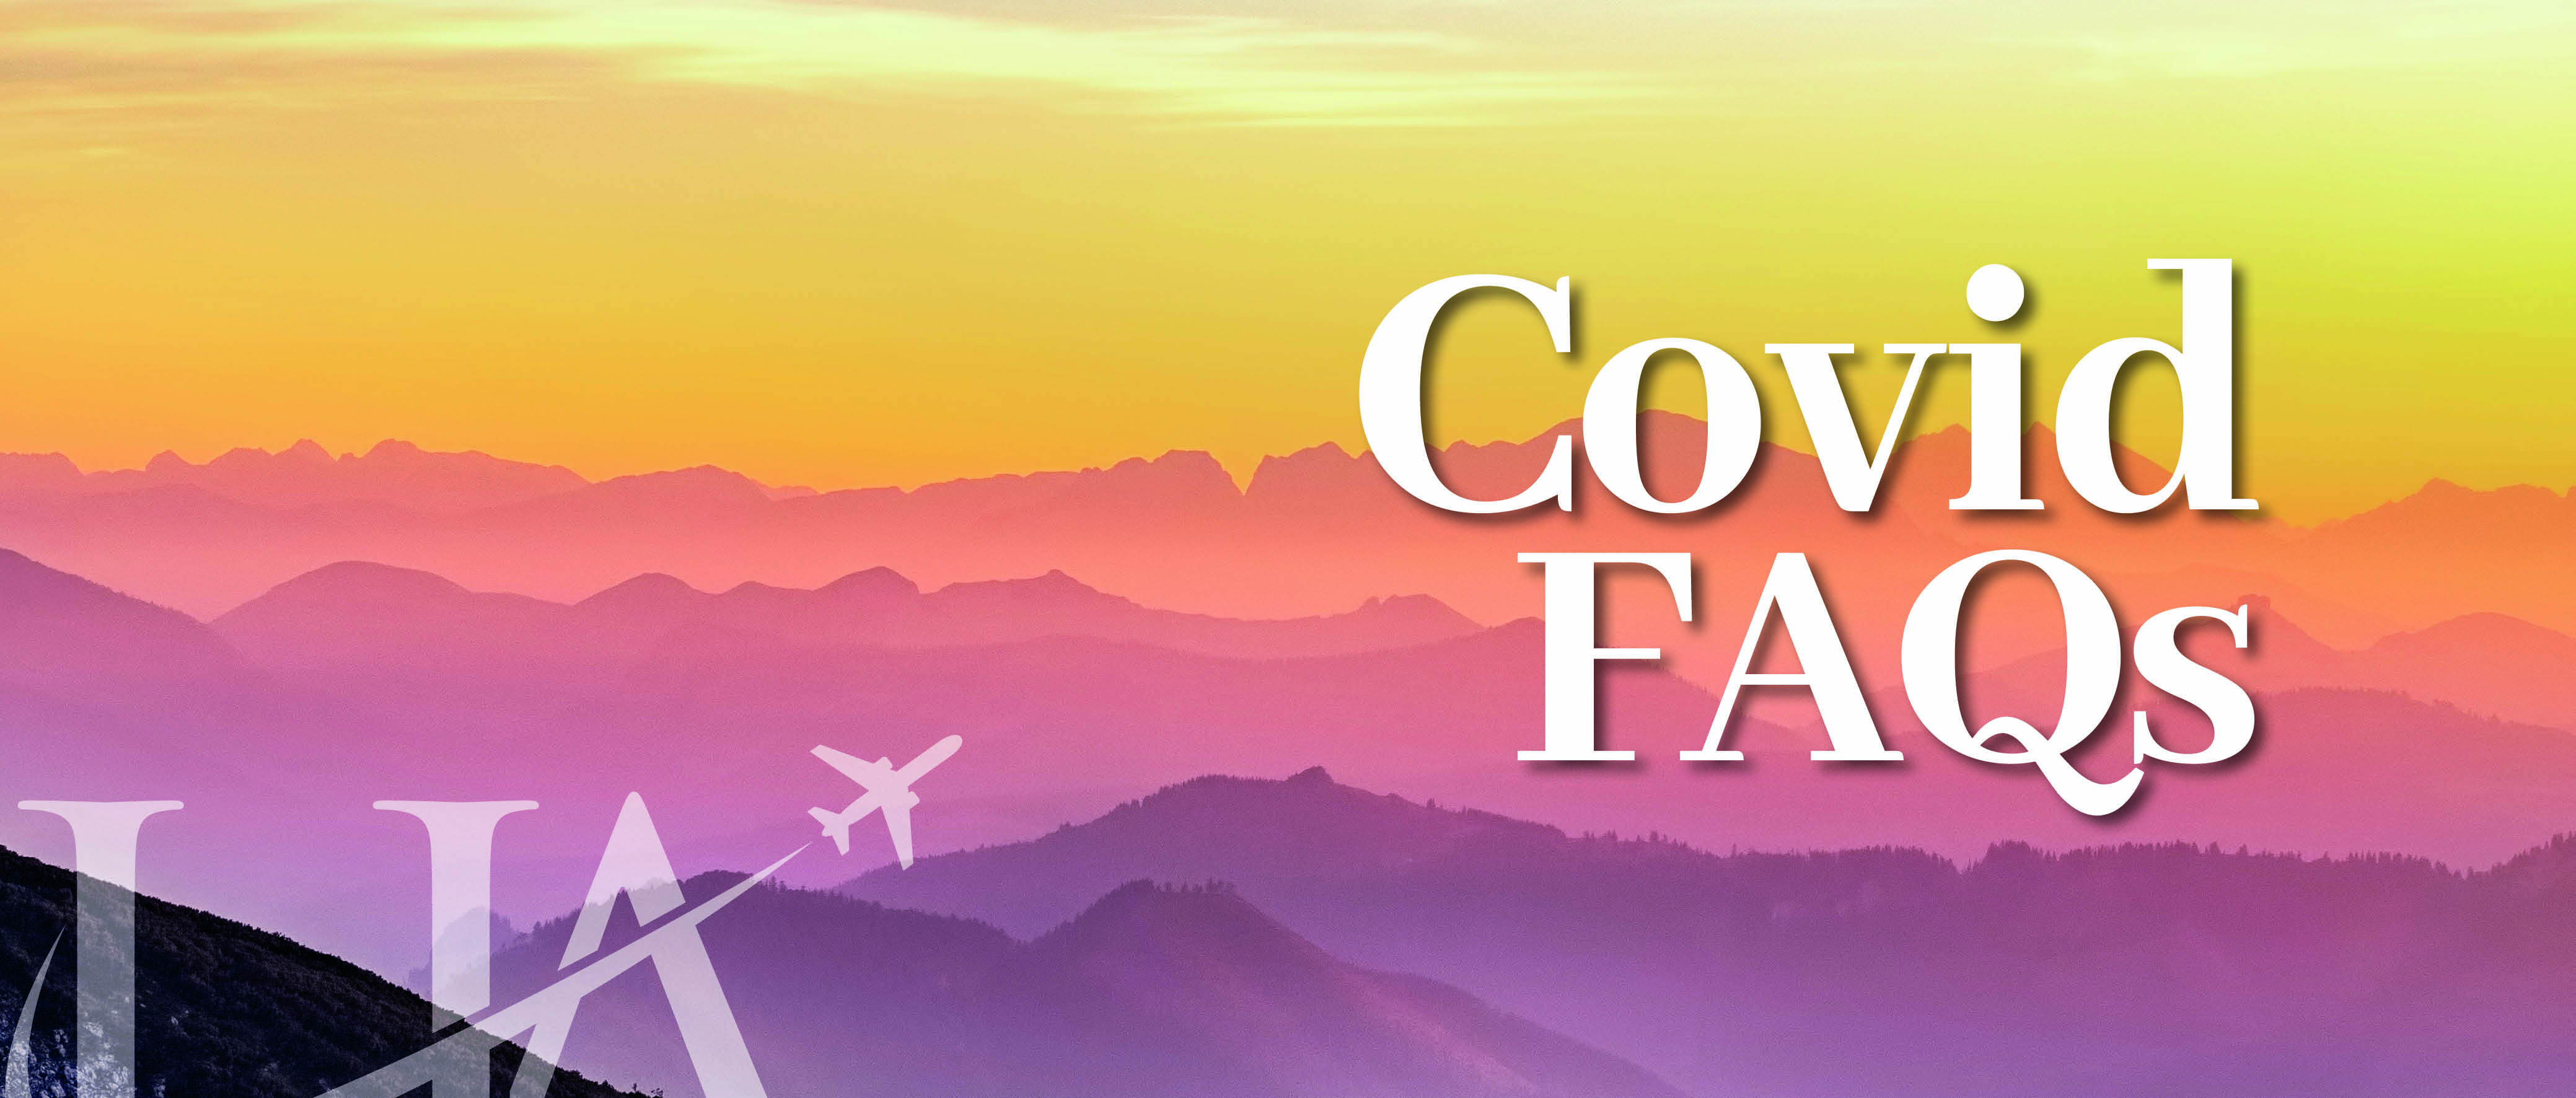 Travel with Confidence Covid FAQs